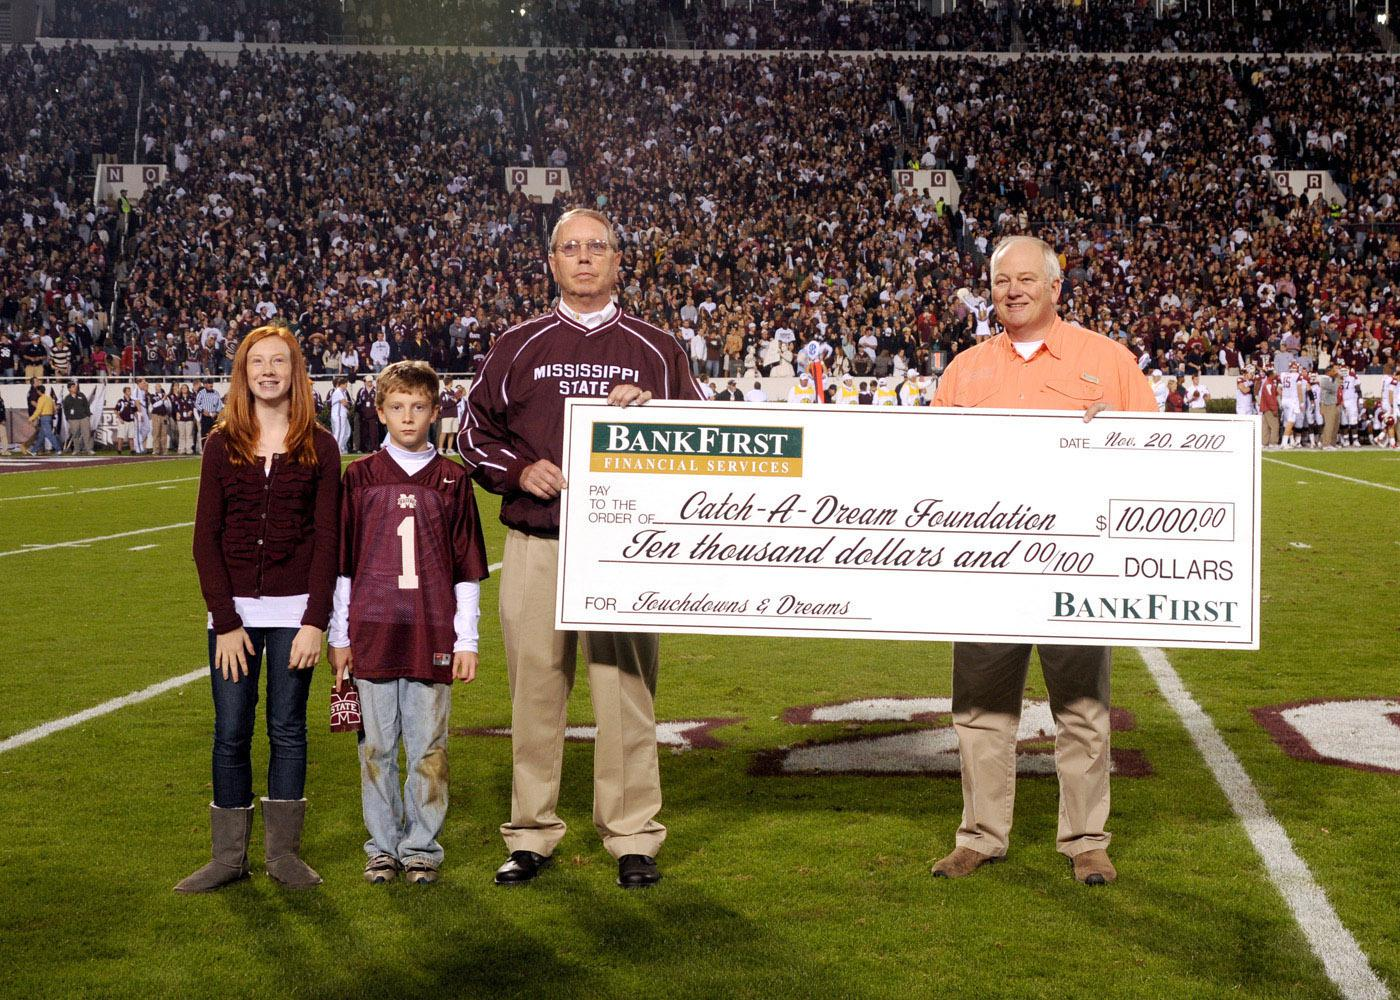 BankFirst made a donation to the Catch-A-Dream Foundation every time the Mississippi State University Bulldogs scored touchdowns. BankFirst's Jerry Wilson, left, presents a ceremonial check for $10,000 to Marty Brunson at the MSU-Arkansas game Nov. 20. Wilson is accompanied by his grandchildren, Mauri and Miller Wilson. (Photo by MSU Ag Communications/Kat Lawrence)